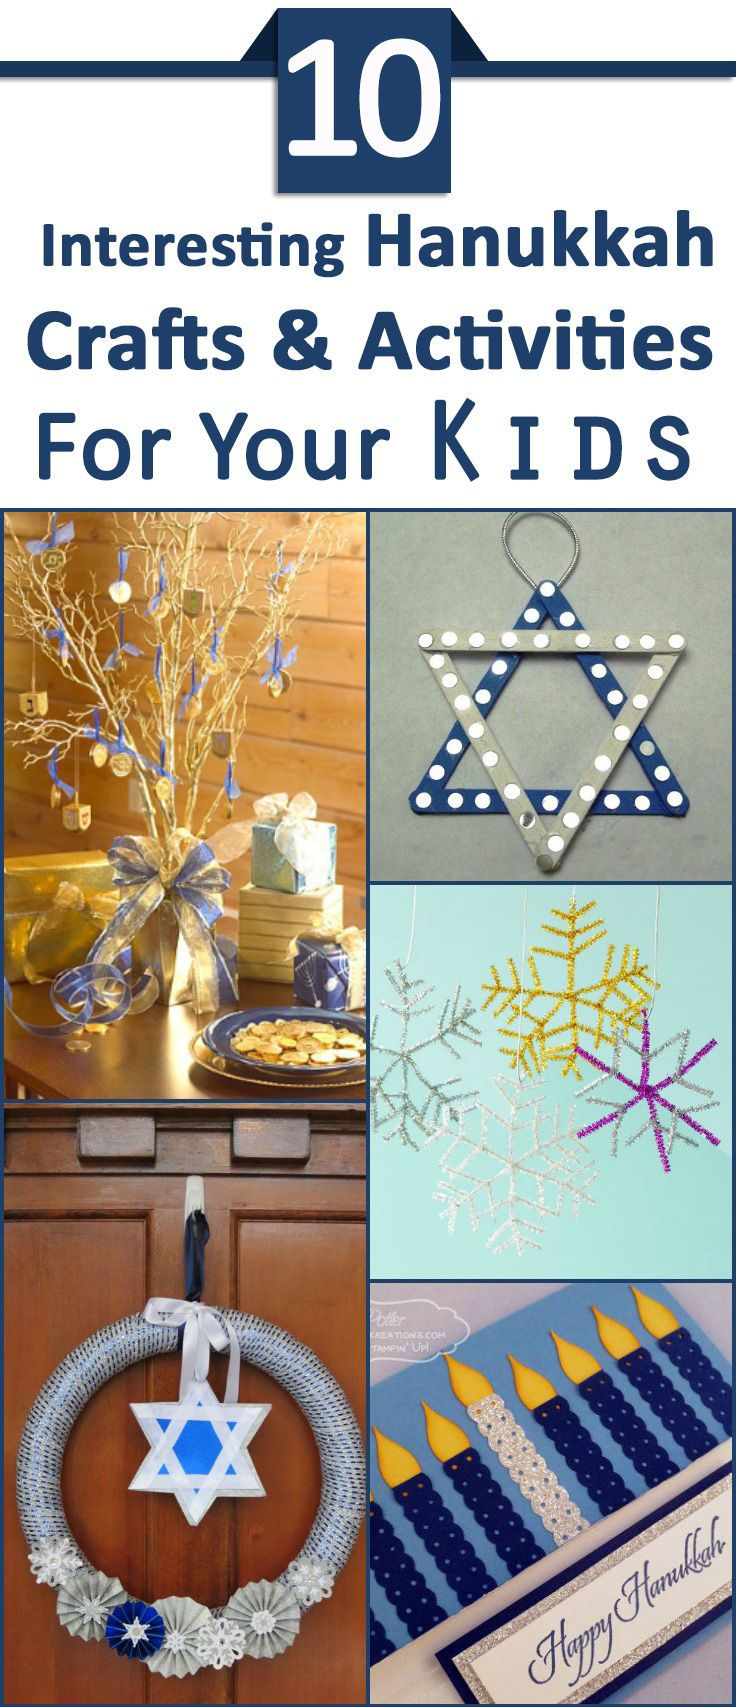 Top 10 Hanukkah Crafts And Activities For Kids